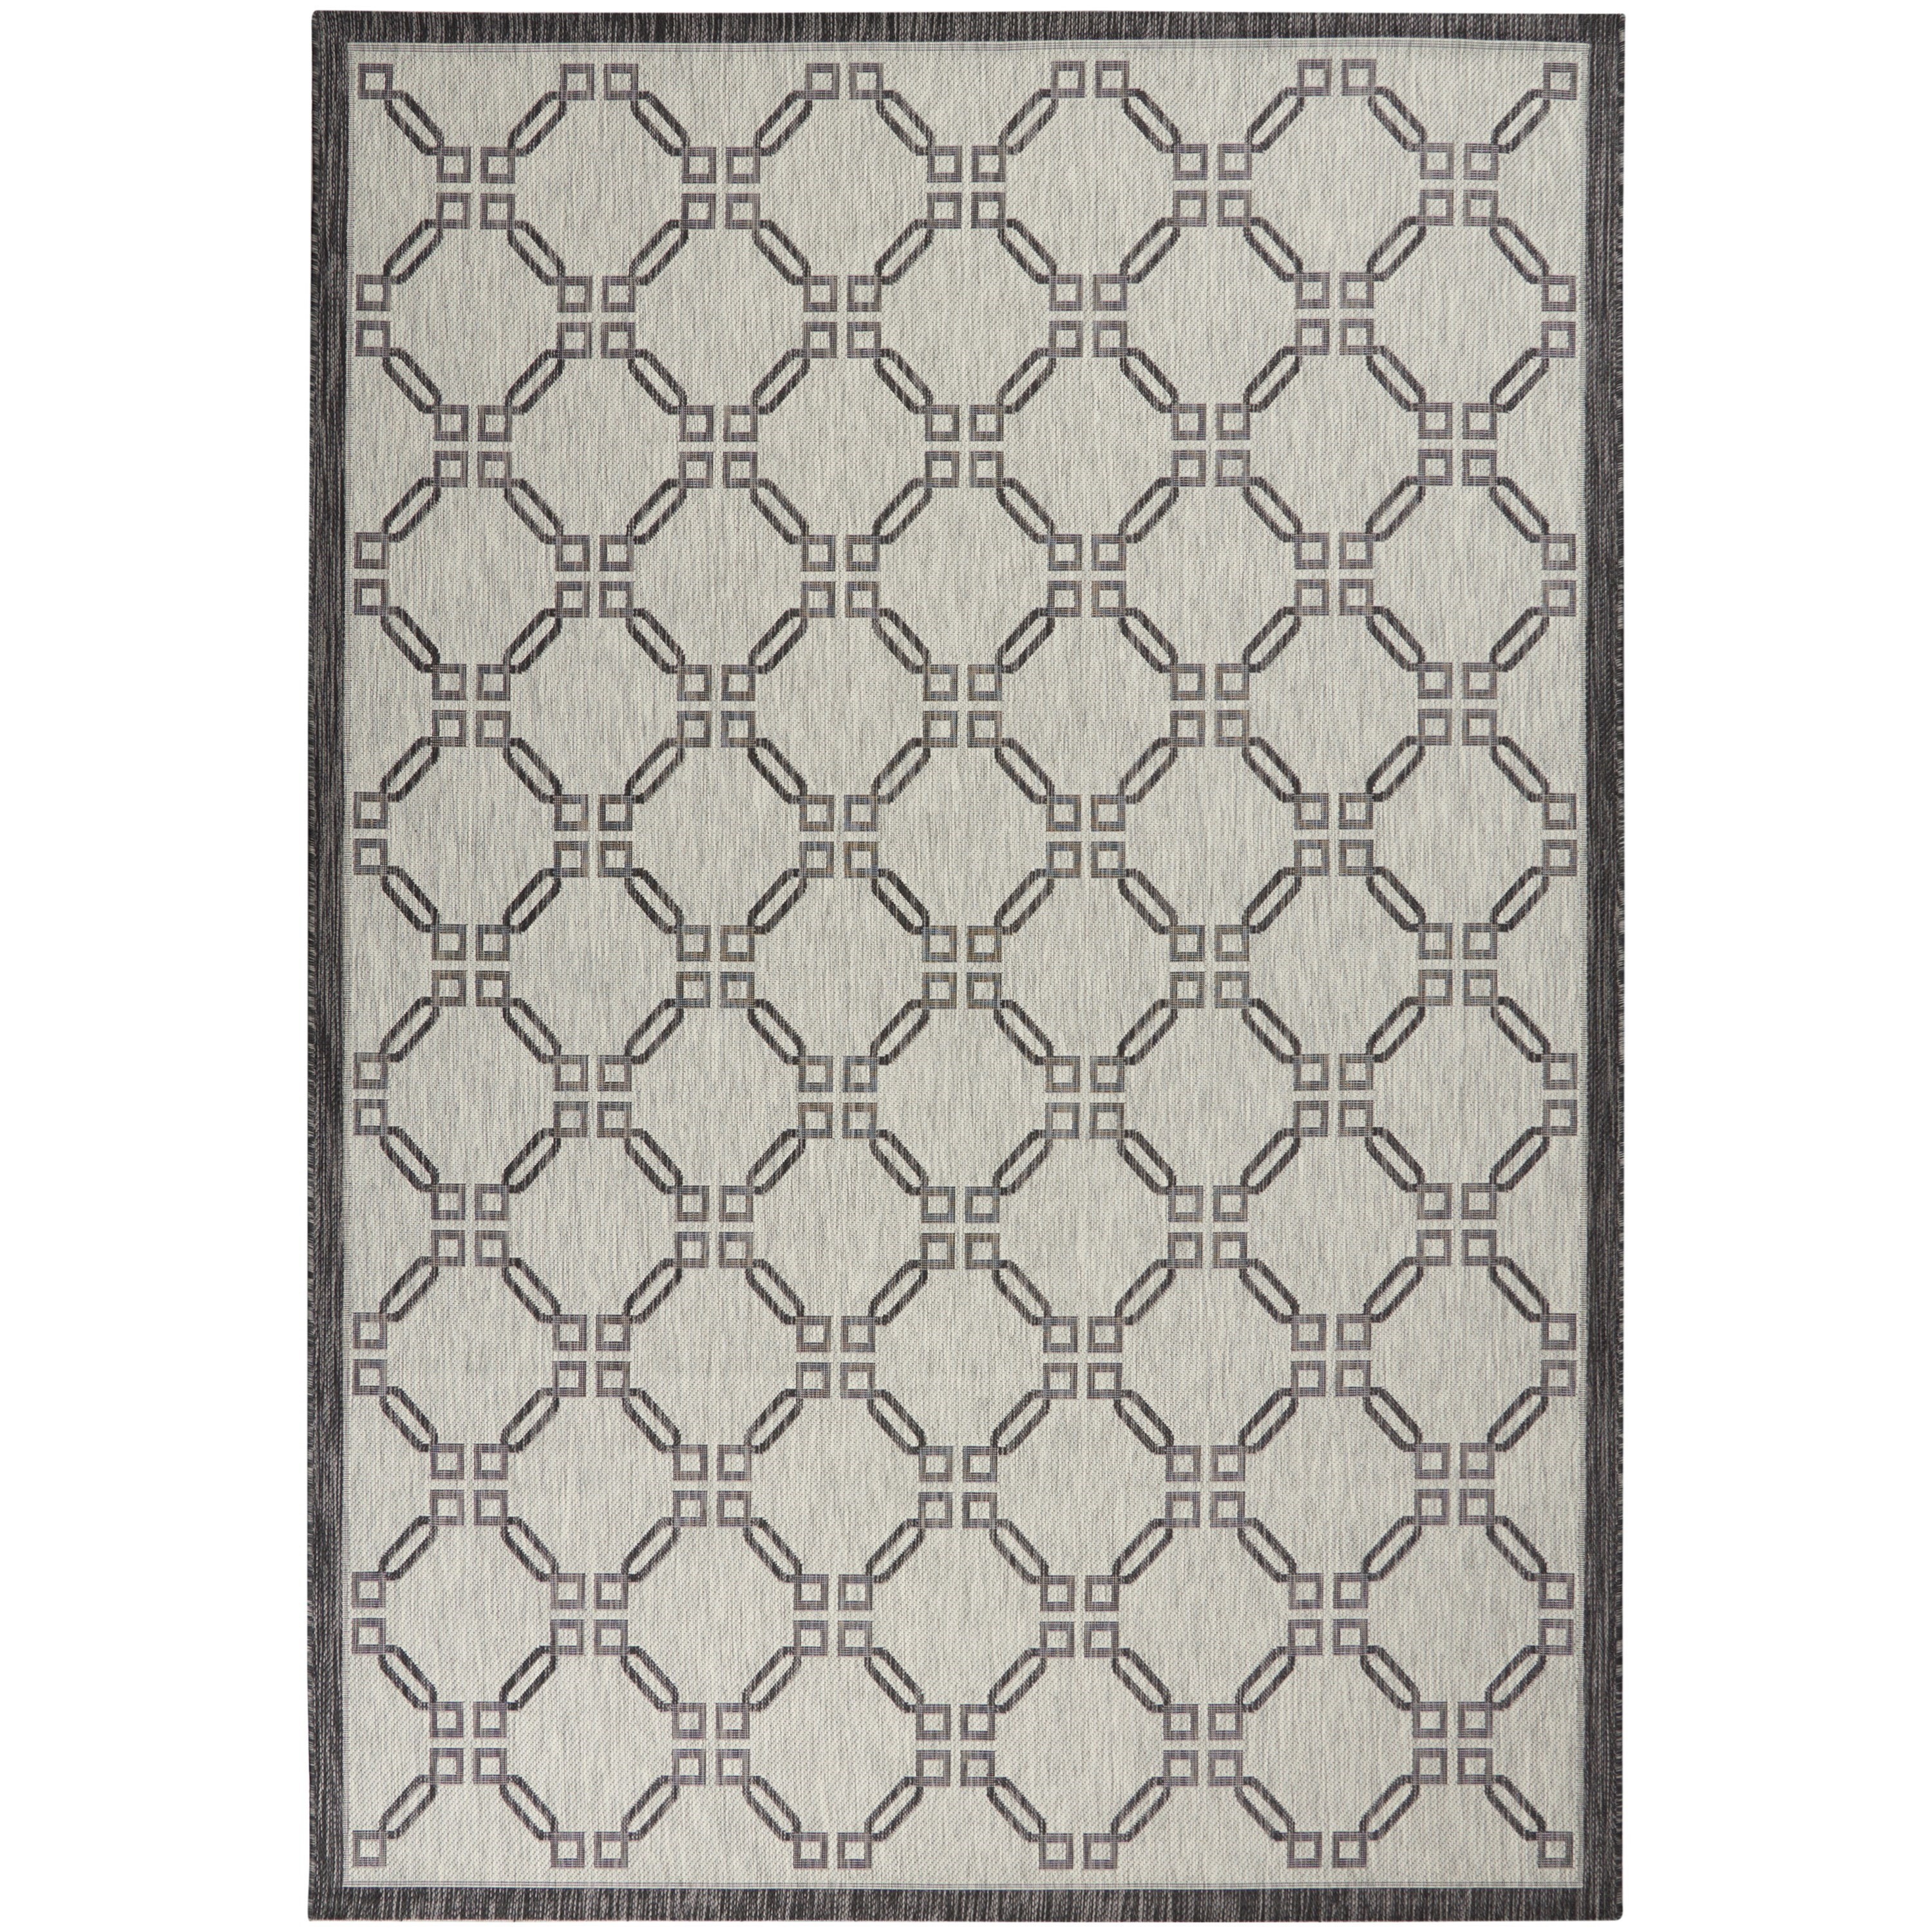 Country Side 2020 7' x 10' Rug by Nourison at Home Collections Furniture